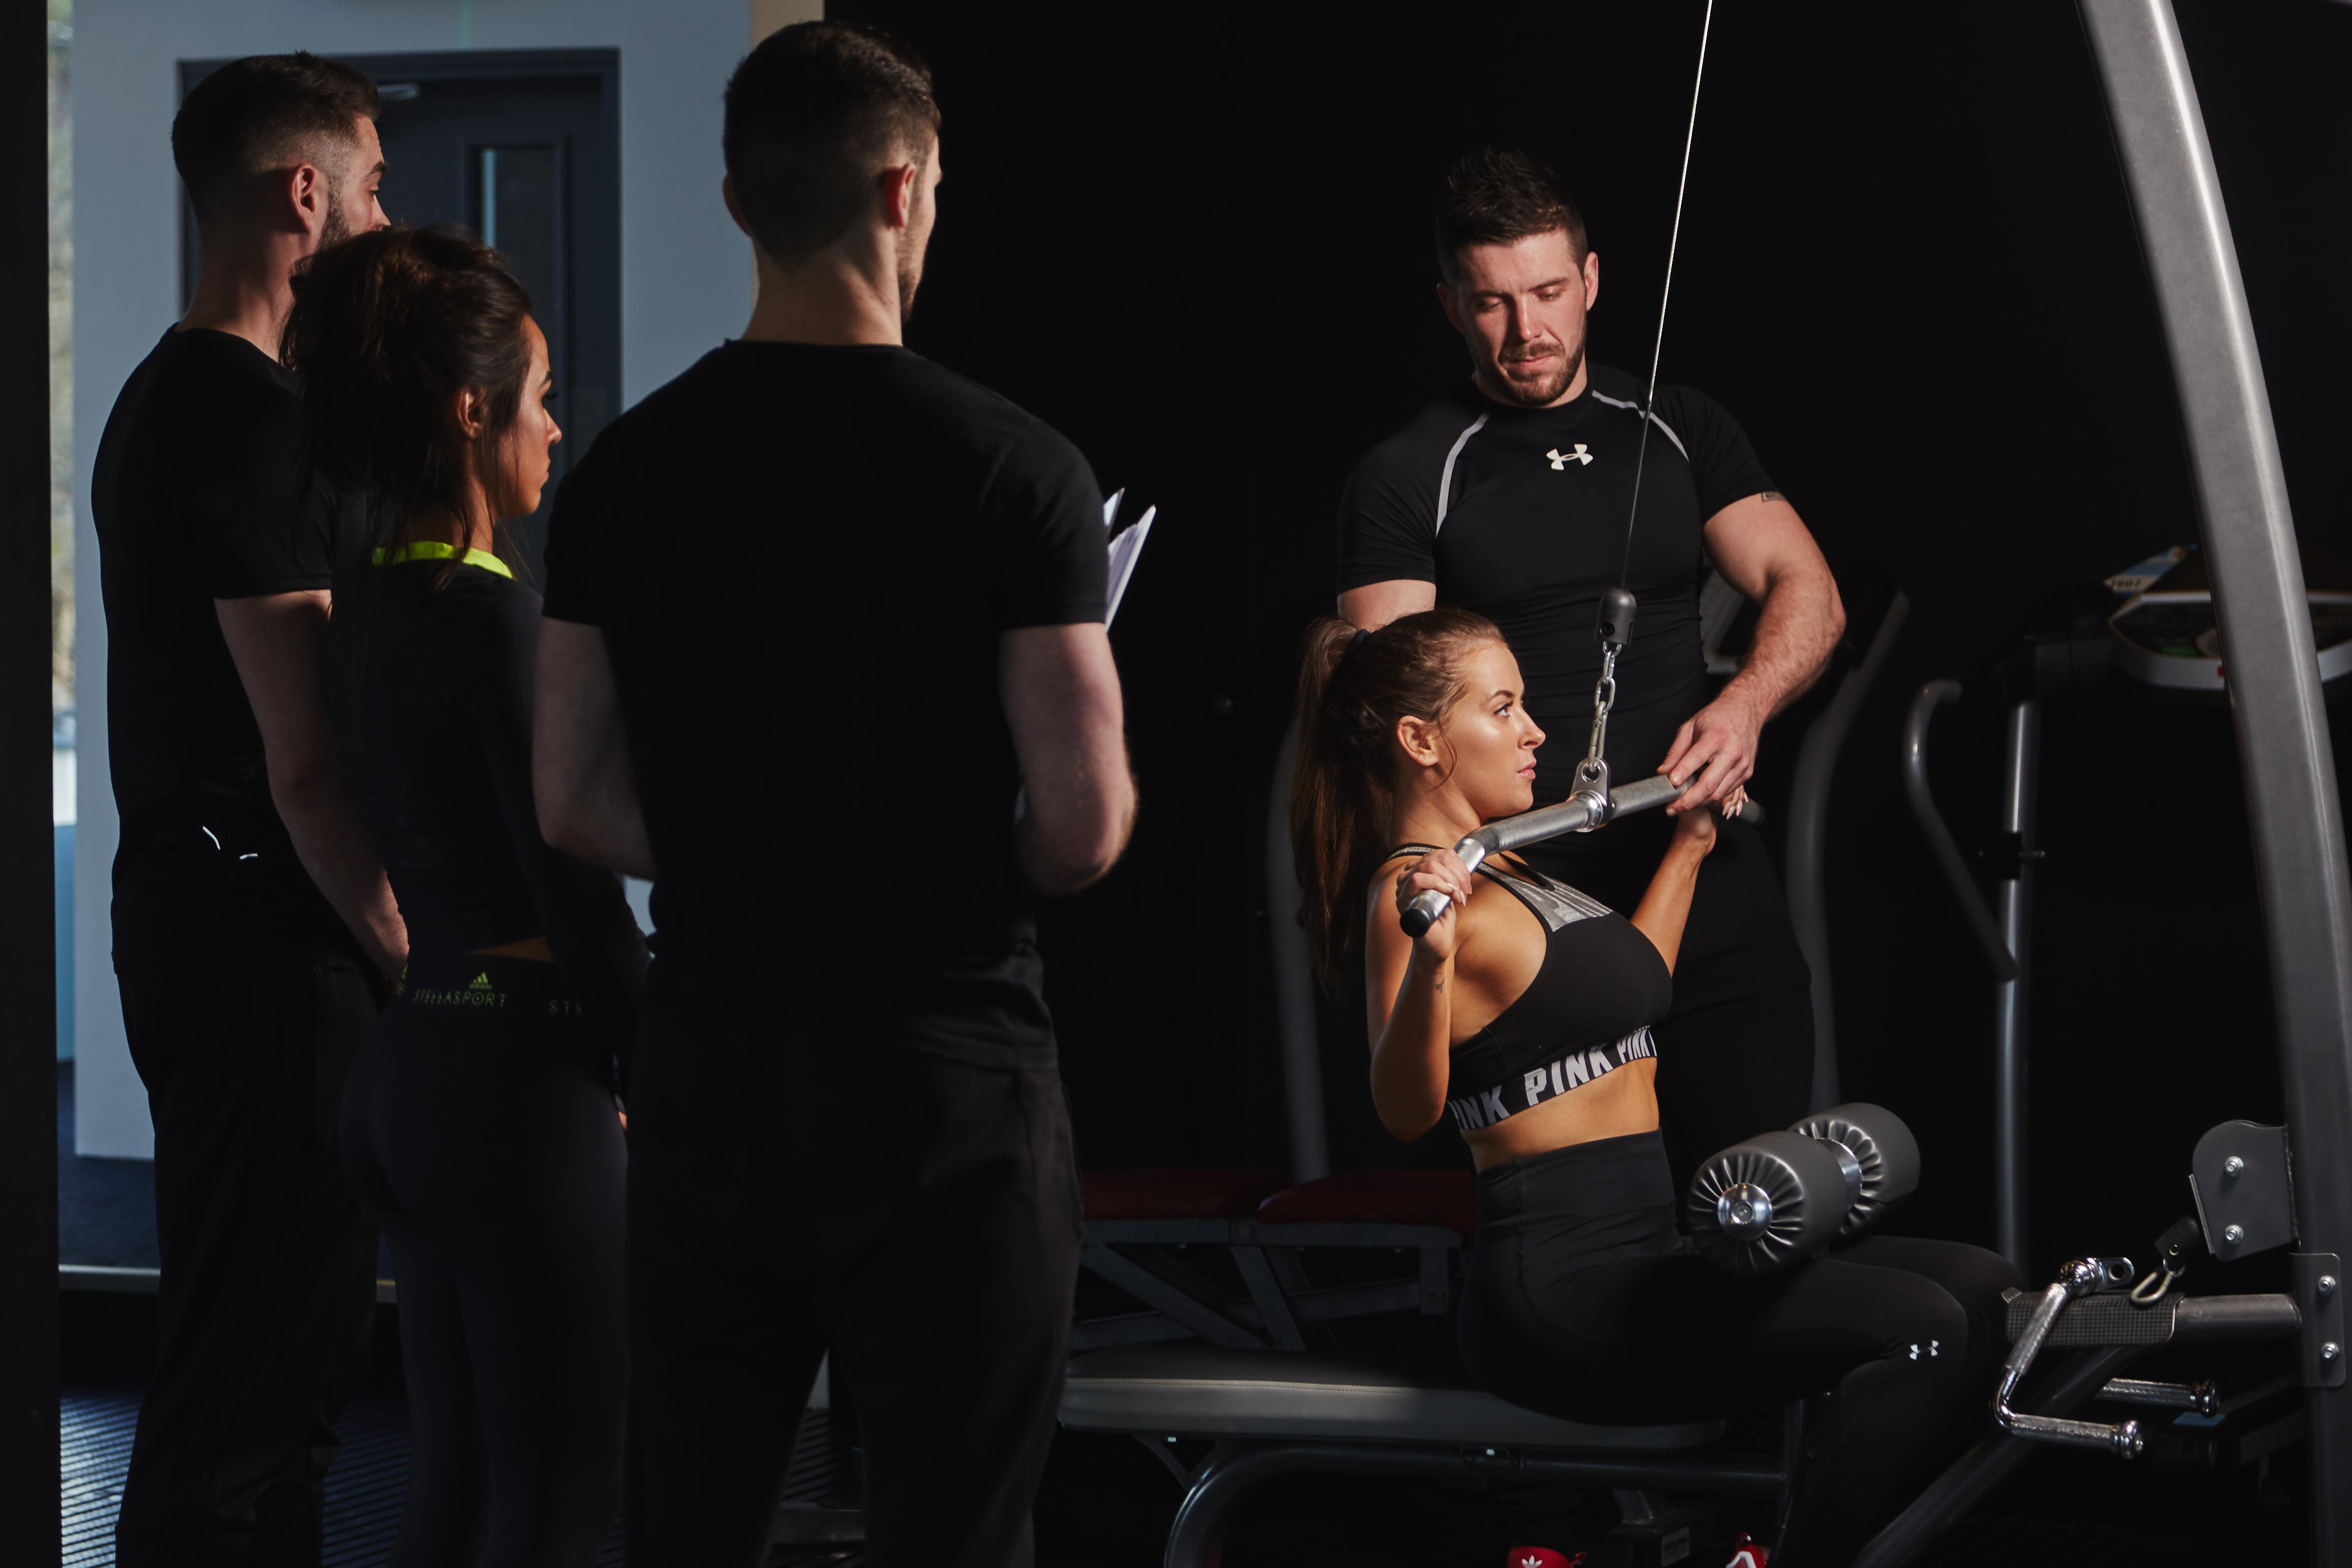 Full Time ITEC Diploma In Personal Training - Ballincollig - Sept 24